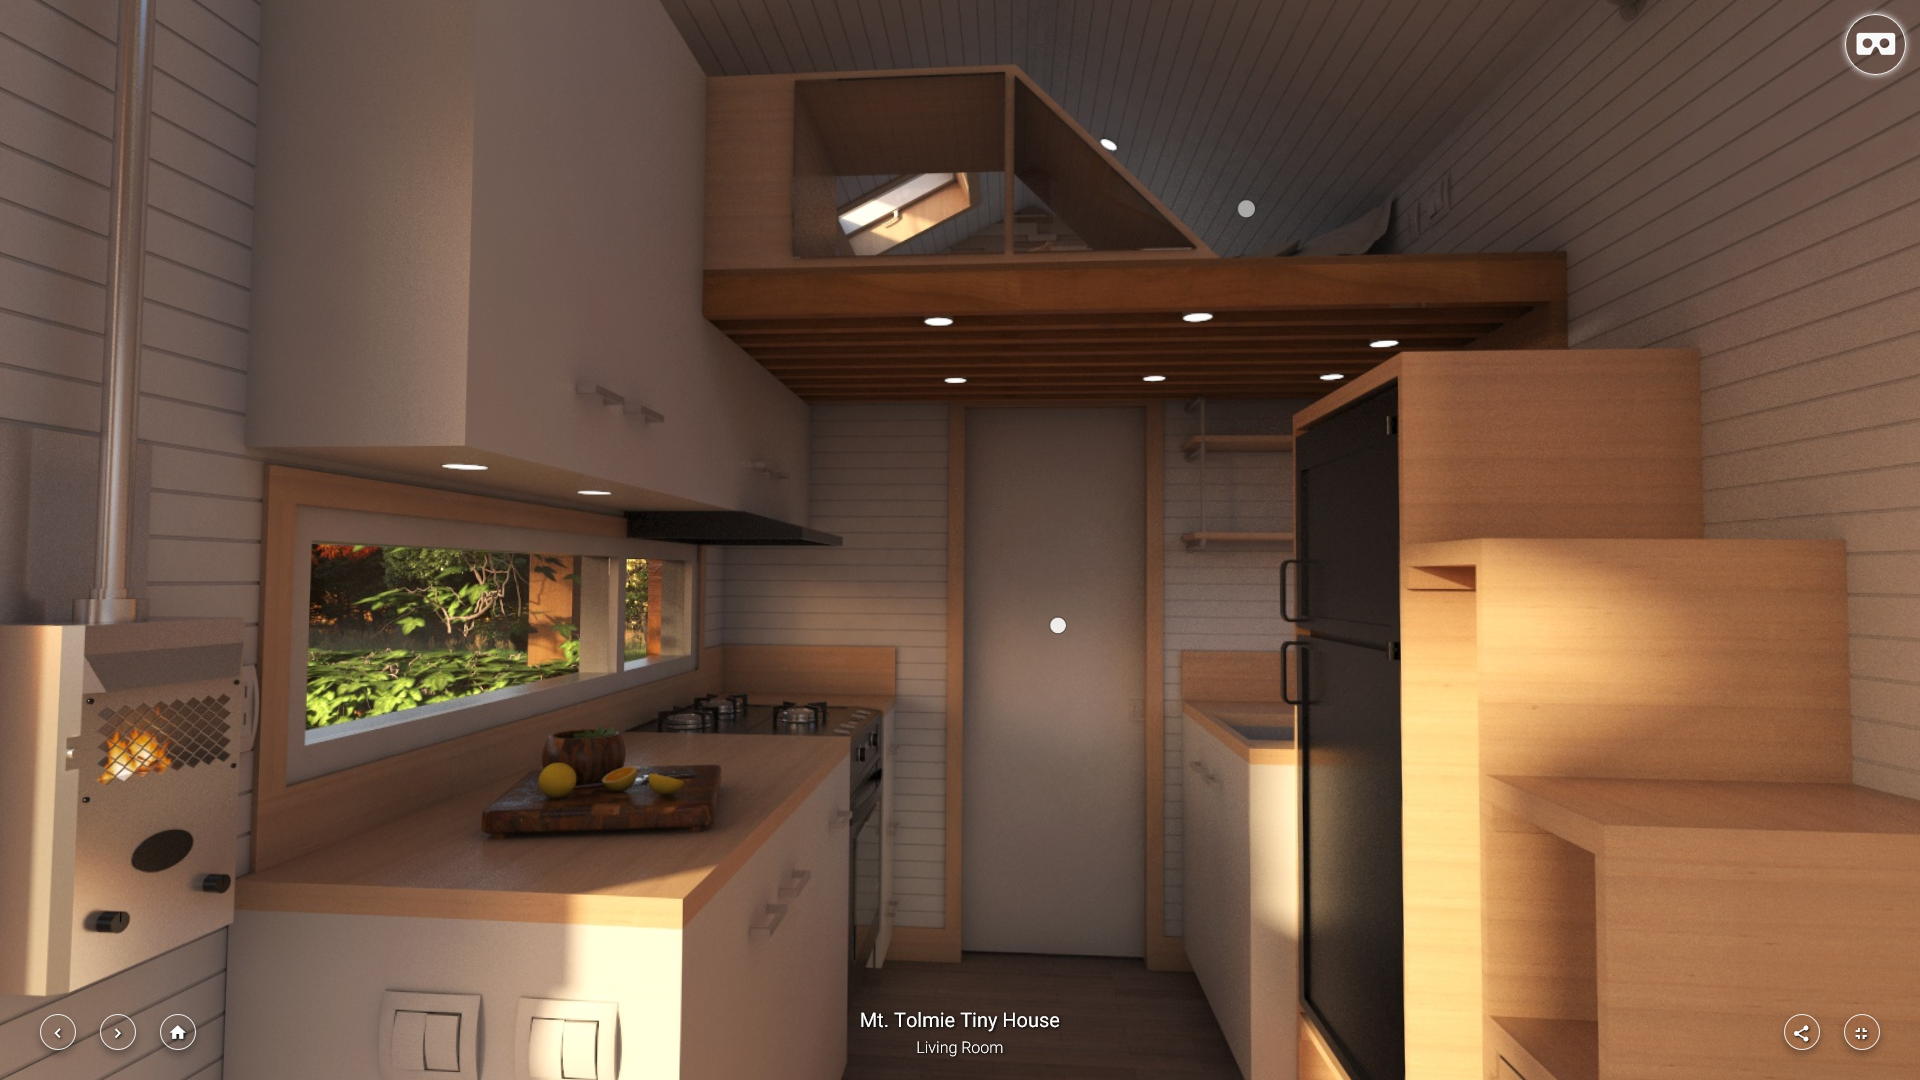 Designing for Small Spaces | Using VR in Tiny House Design